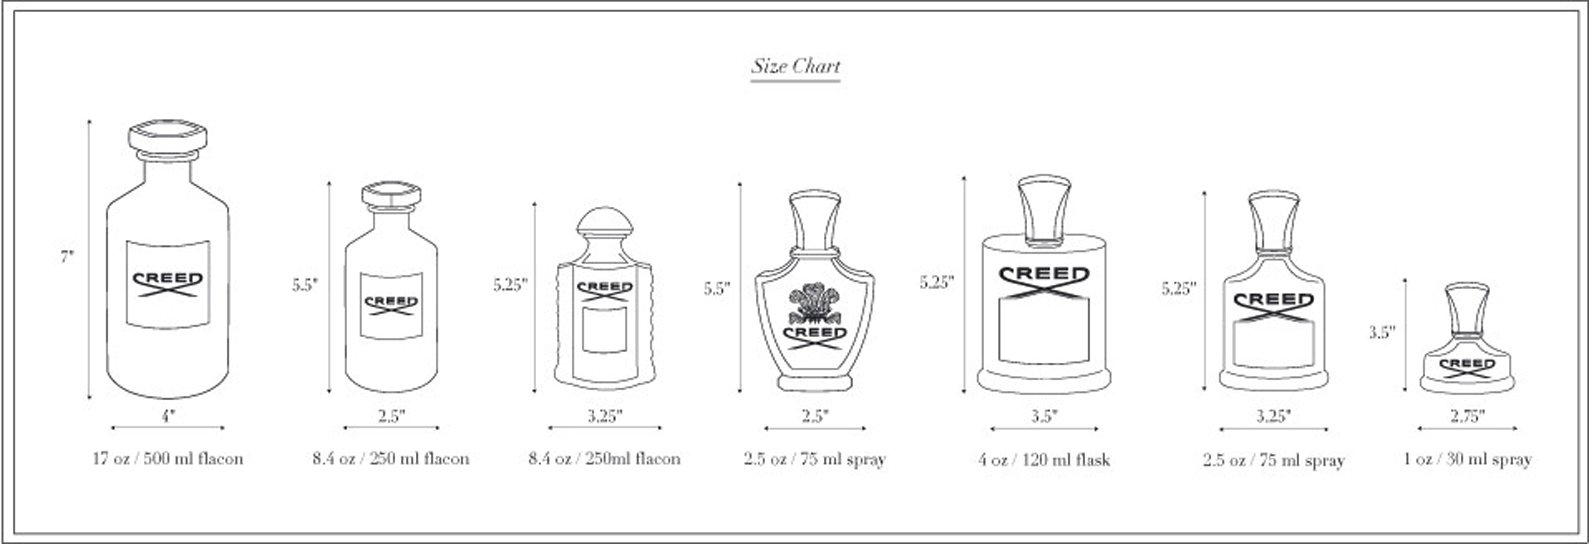 Creed Spring Flower by Creed for Women Millesime Spray, 2.5 Ounce by Creed (Image #4)